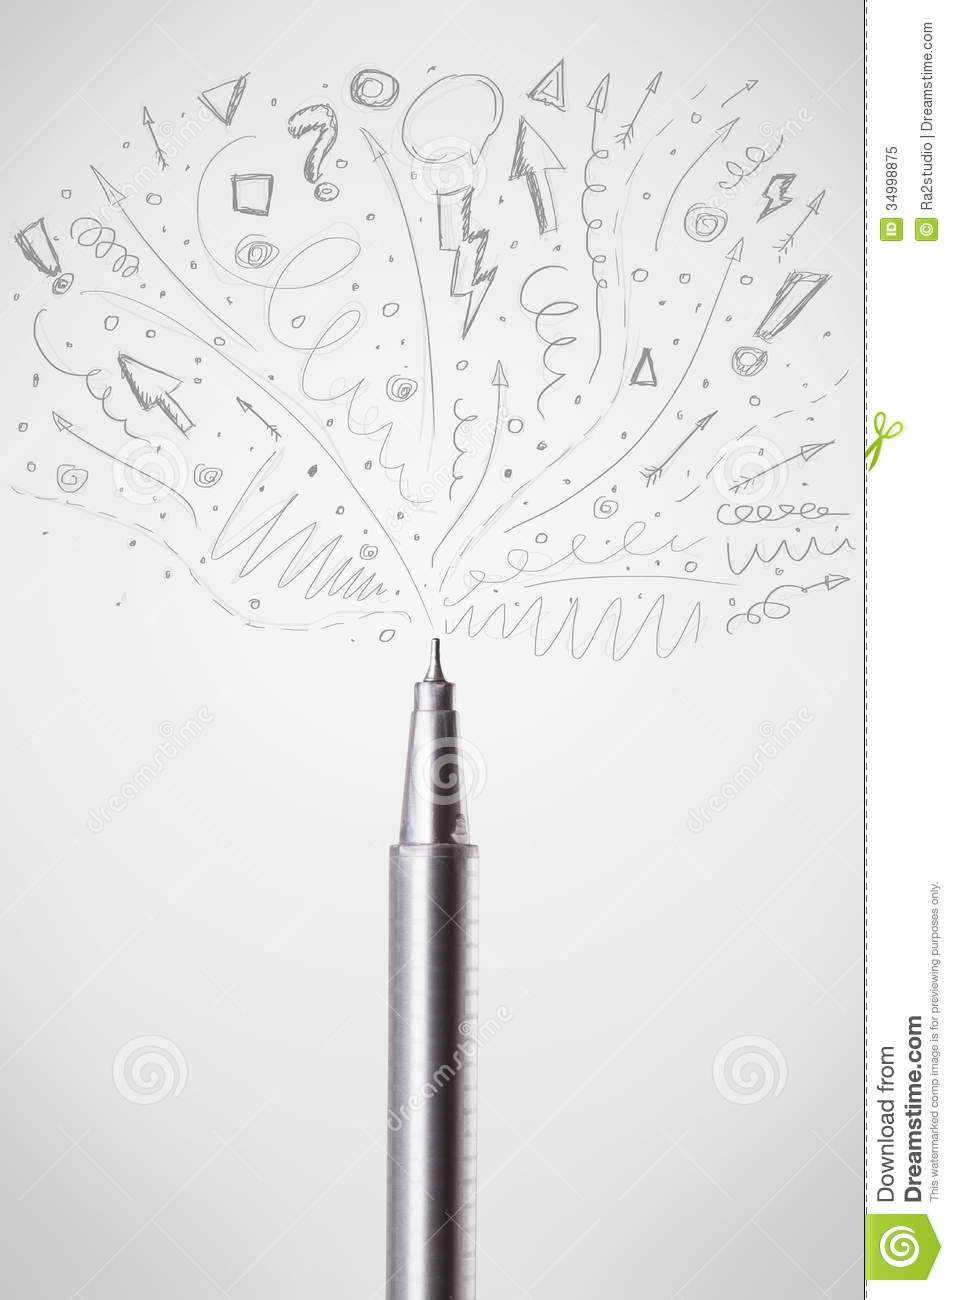 Drawing Lines With Arrows In Photo : Pen drawing sketchy arrows royalty free stock photo